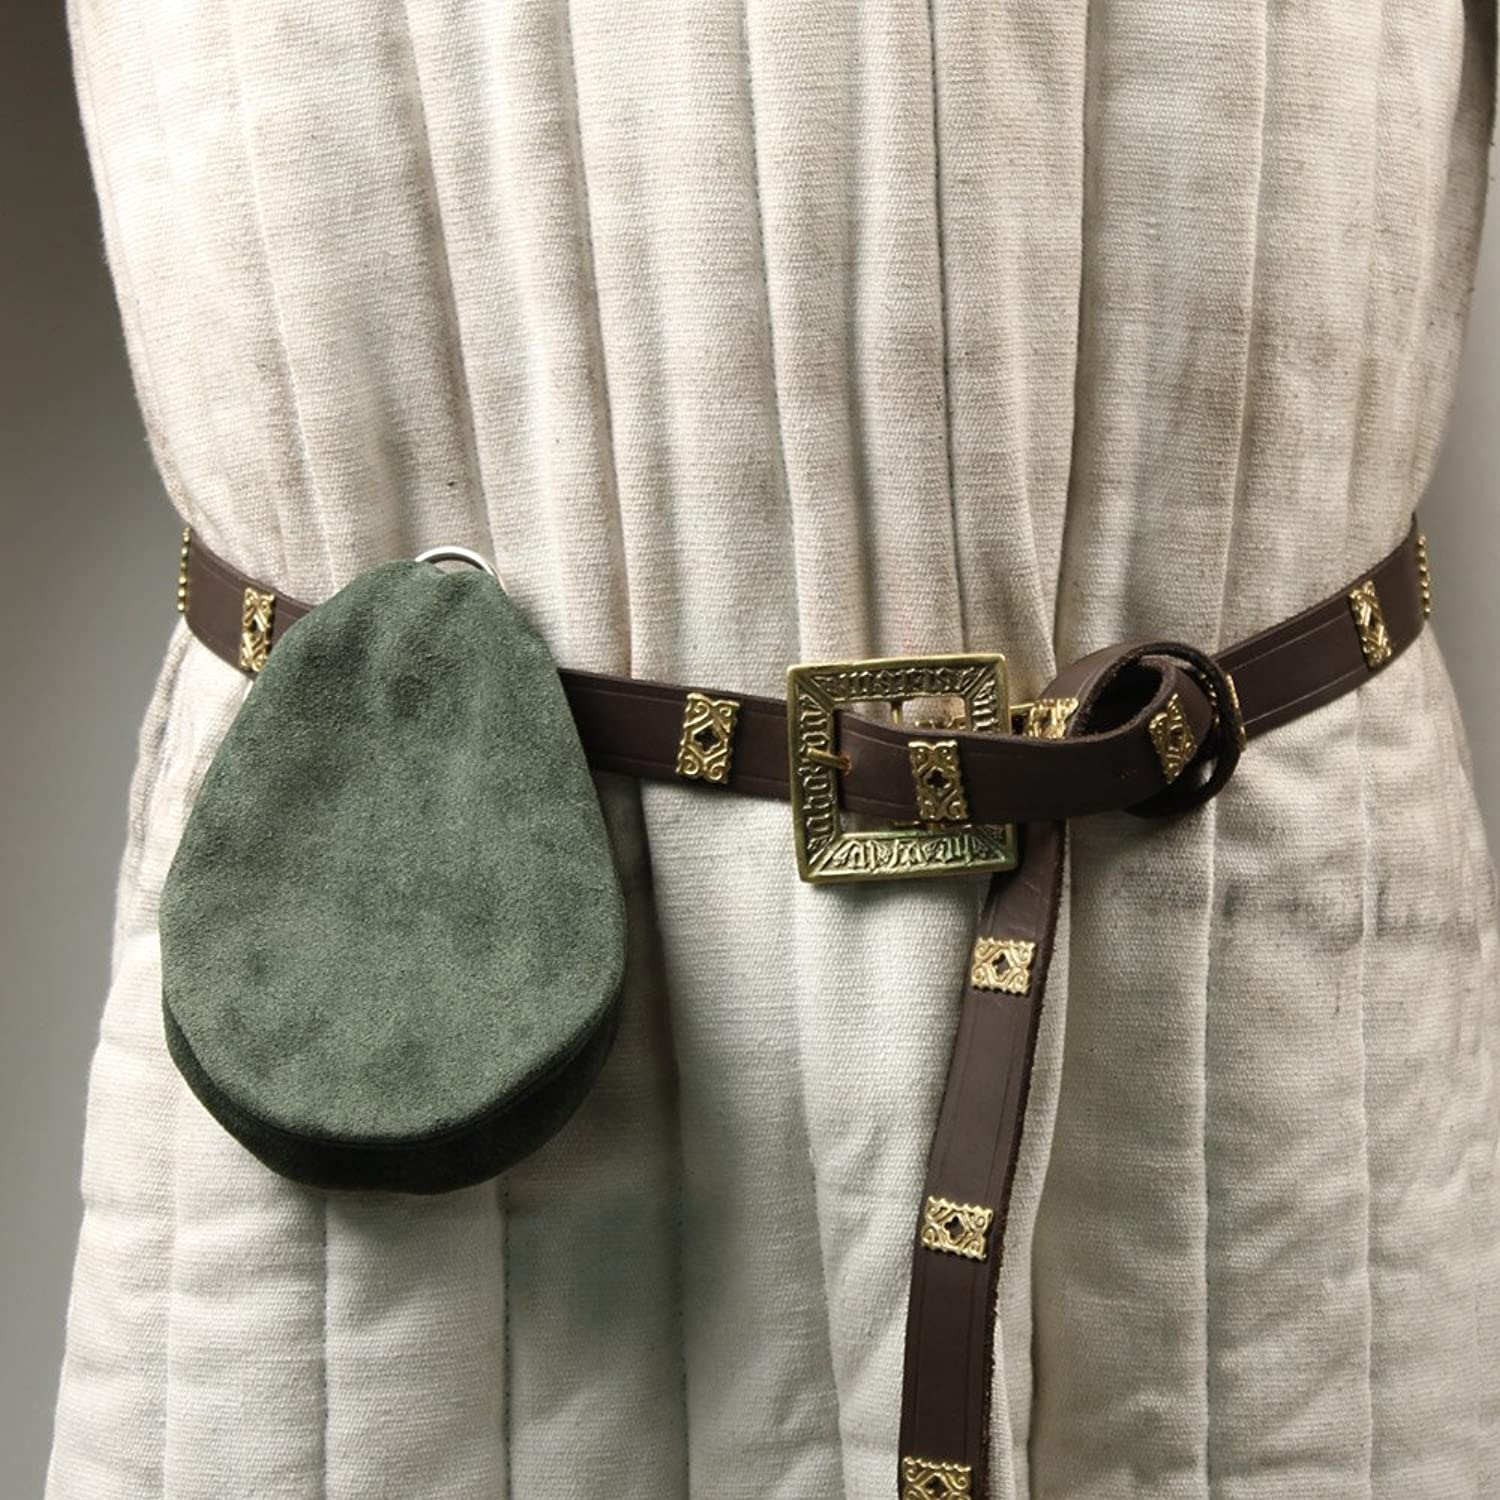 Deluxe Adult Costumes - Peasant's green suede coin pouch by Armory Replicas